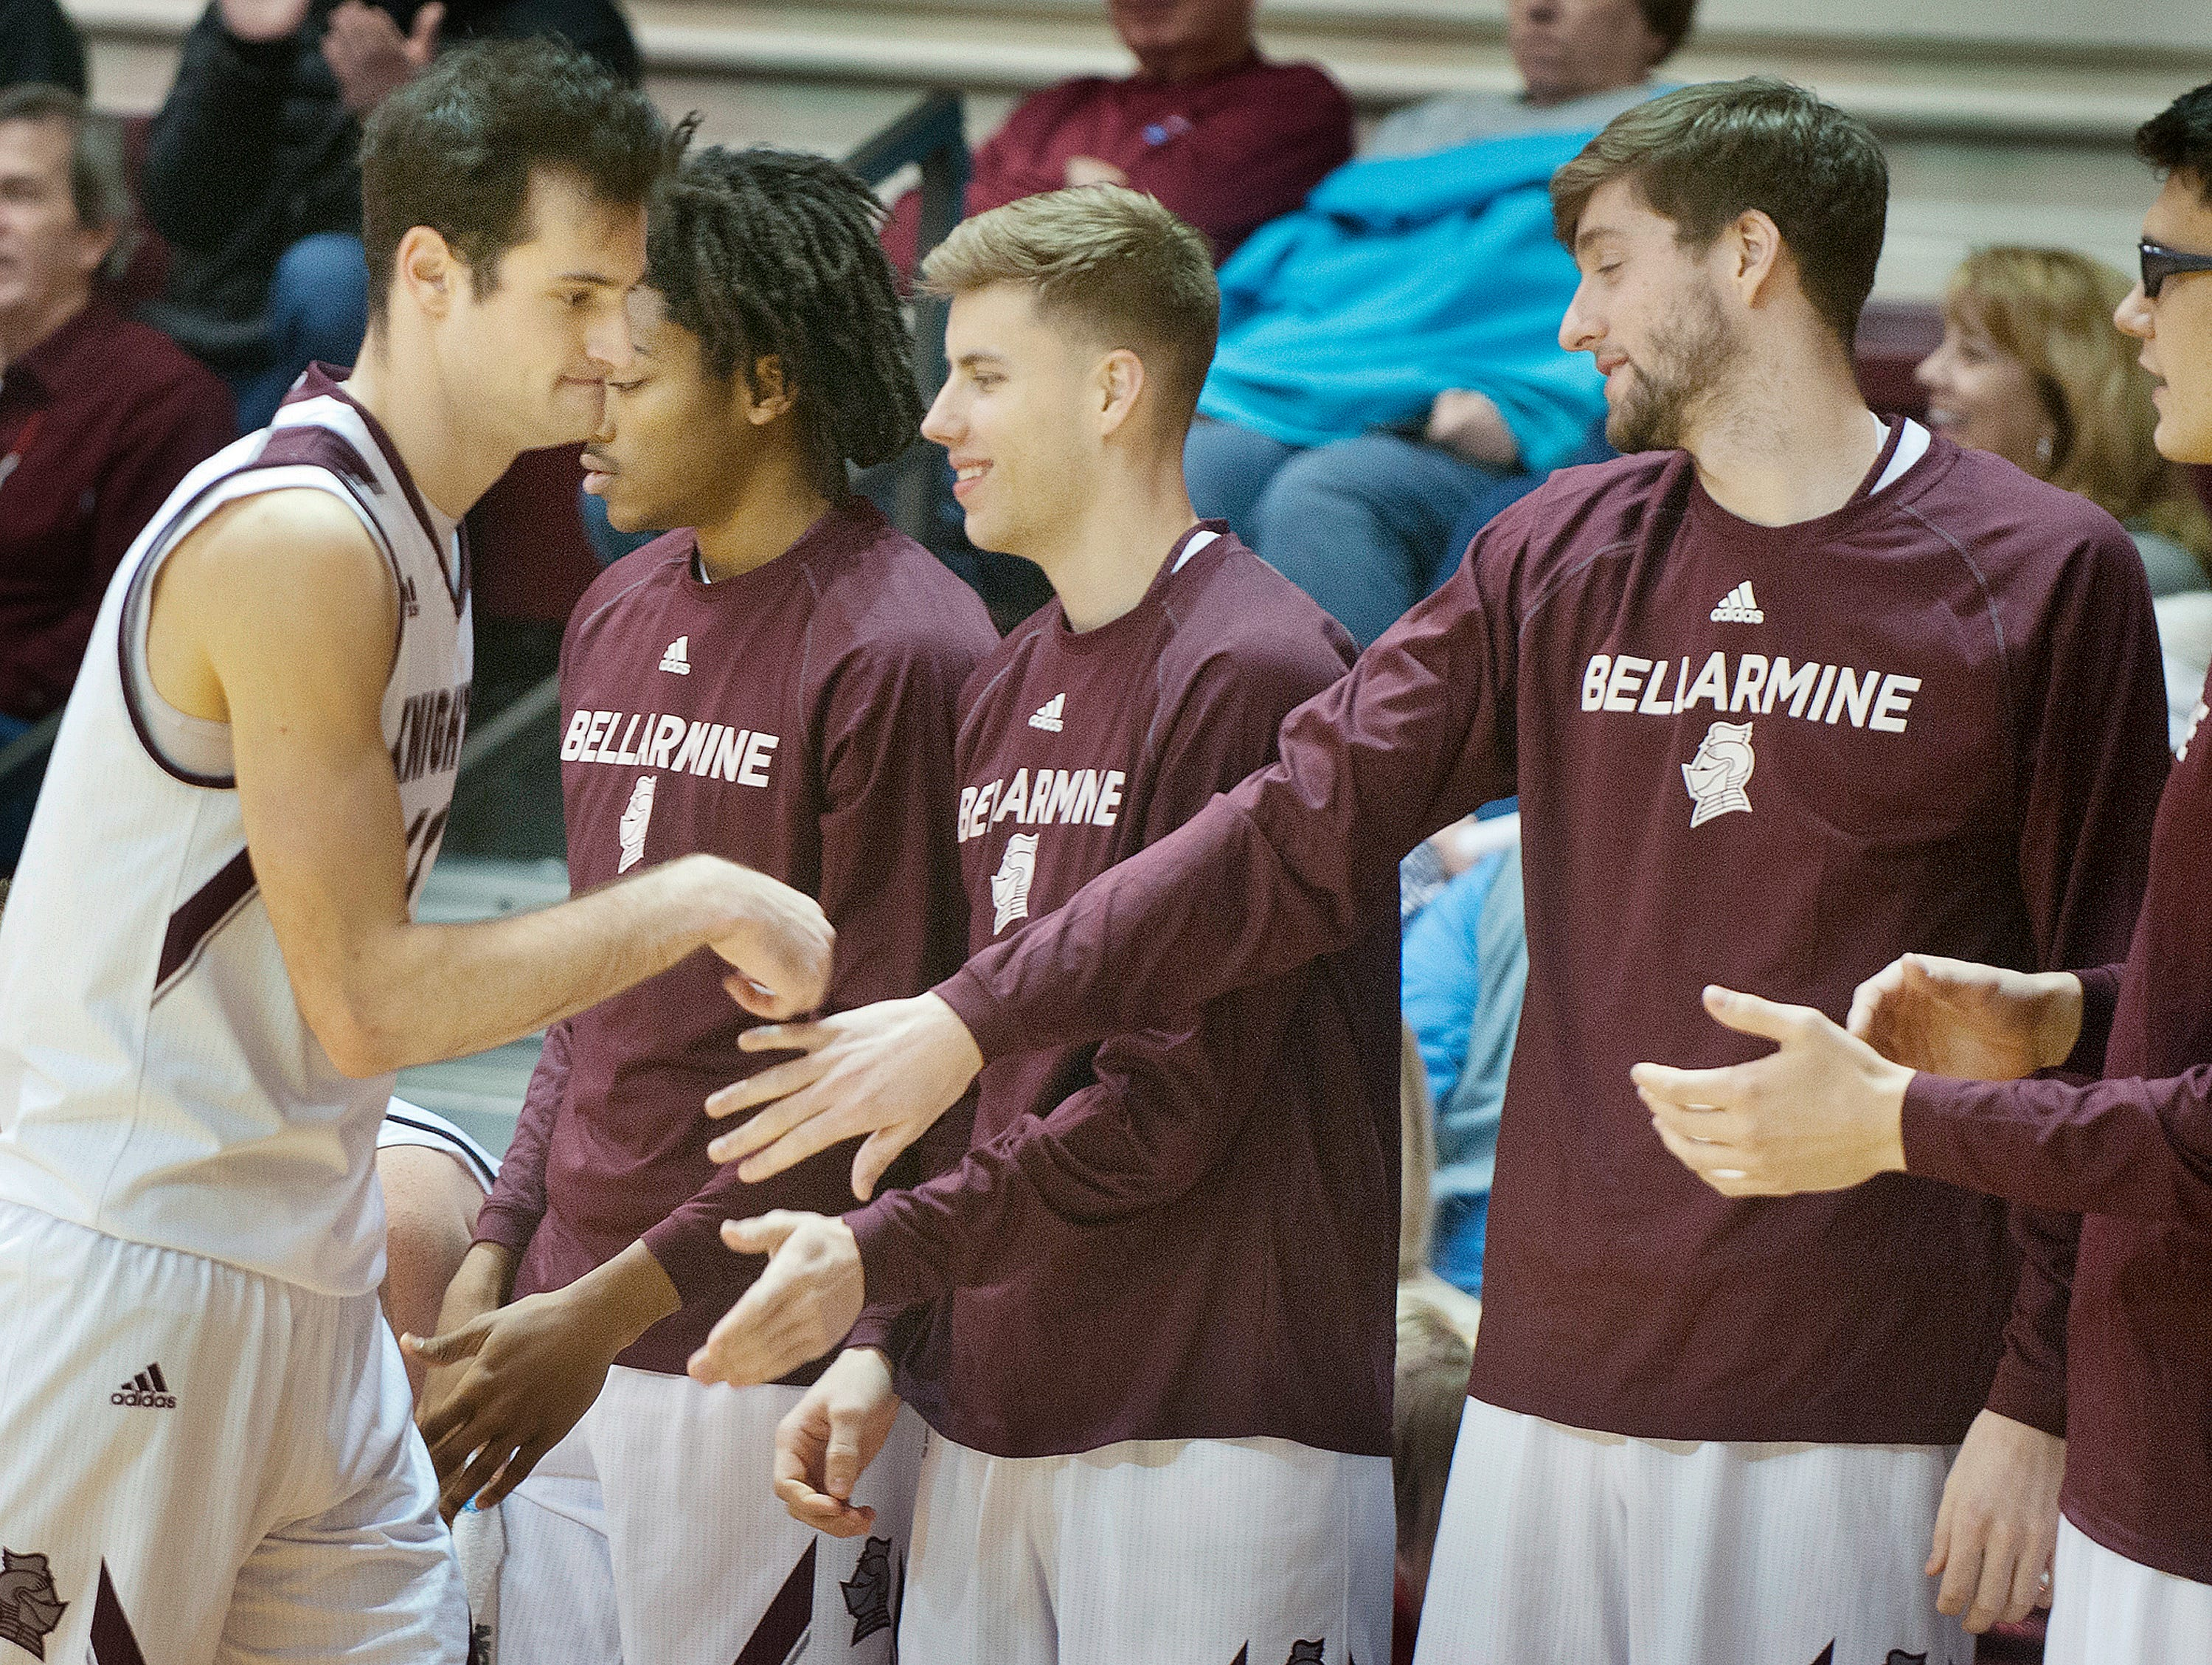 Bellarmine forward Adam Eberhard raps the hands of players in camaraderie after coming out of the game late in the second half.18 December 2018